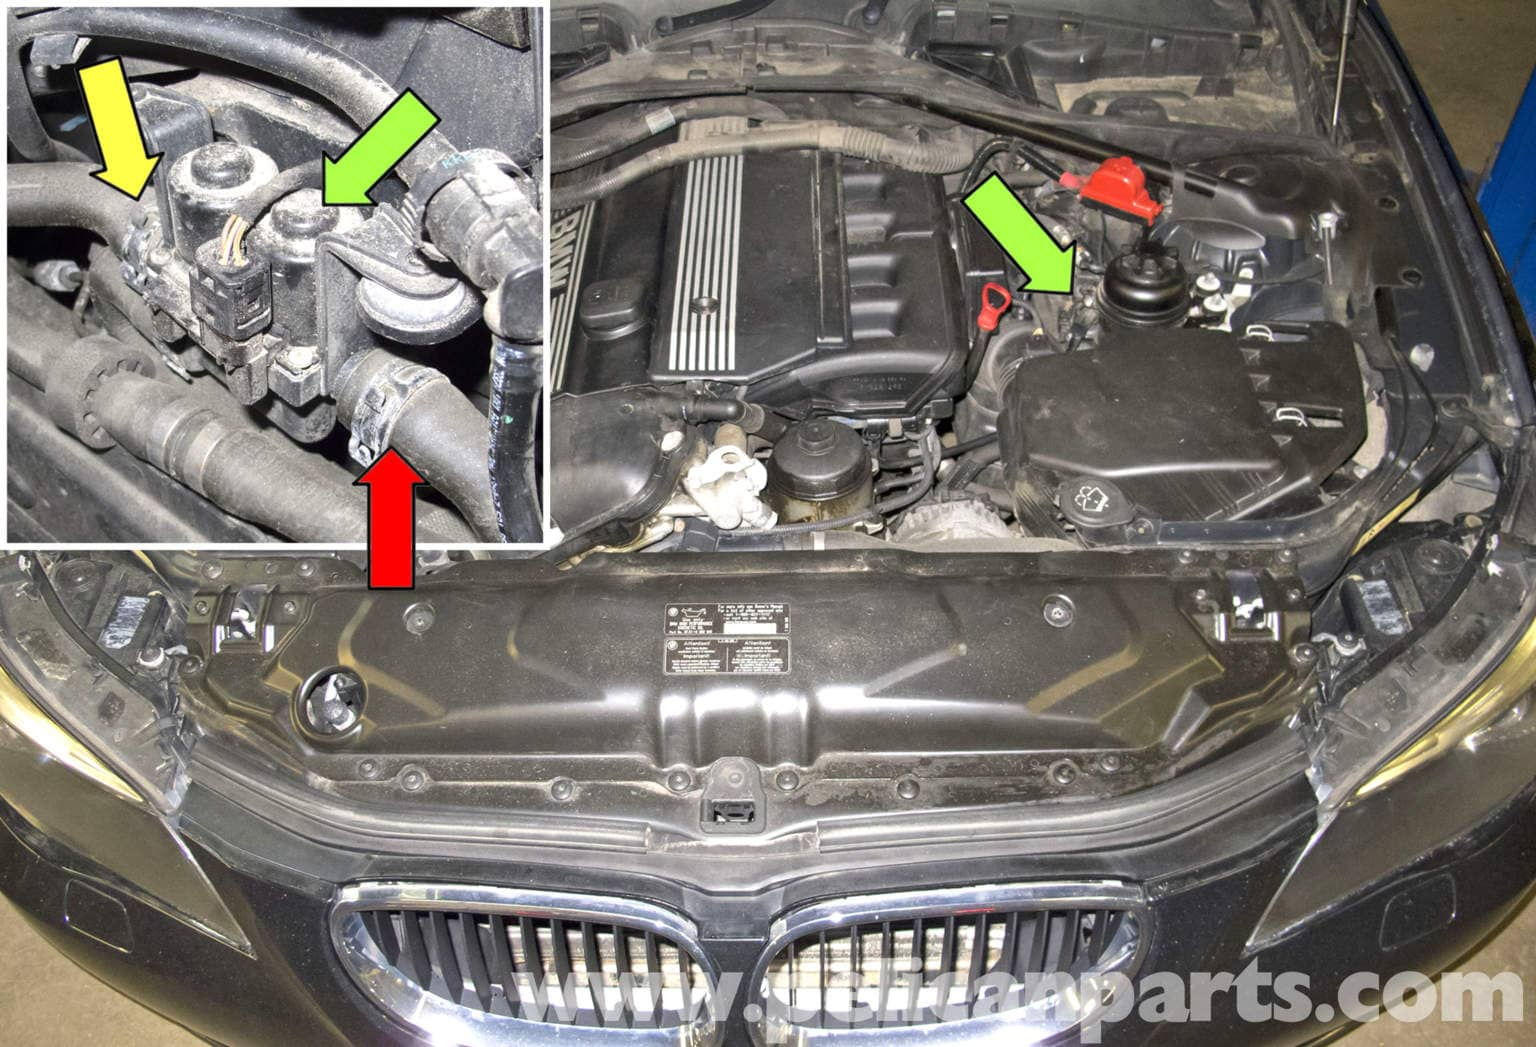 Bmw E60 5 Series Heater Valve Testing And Replacement Pelican Parts Technical Article